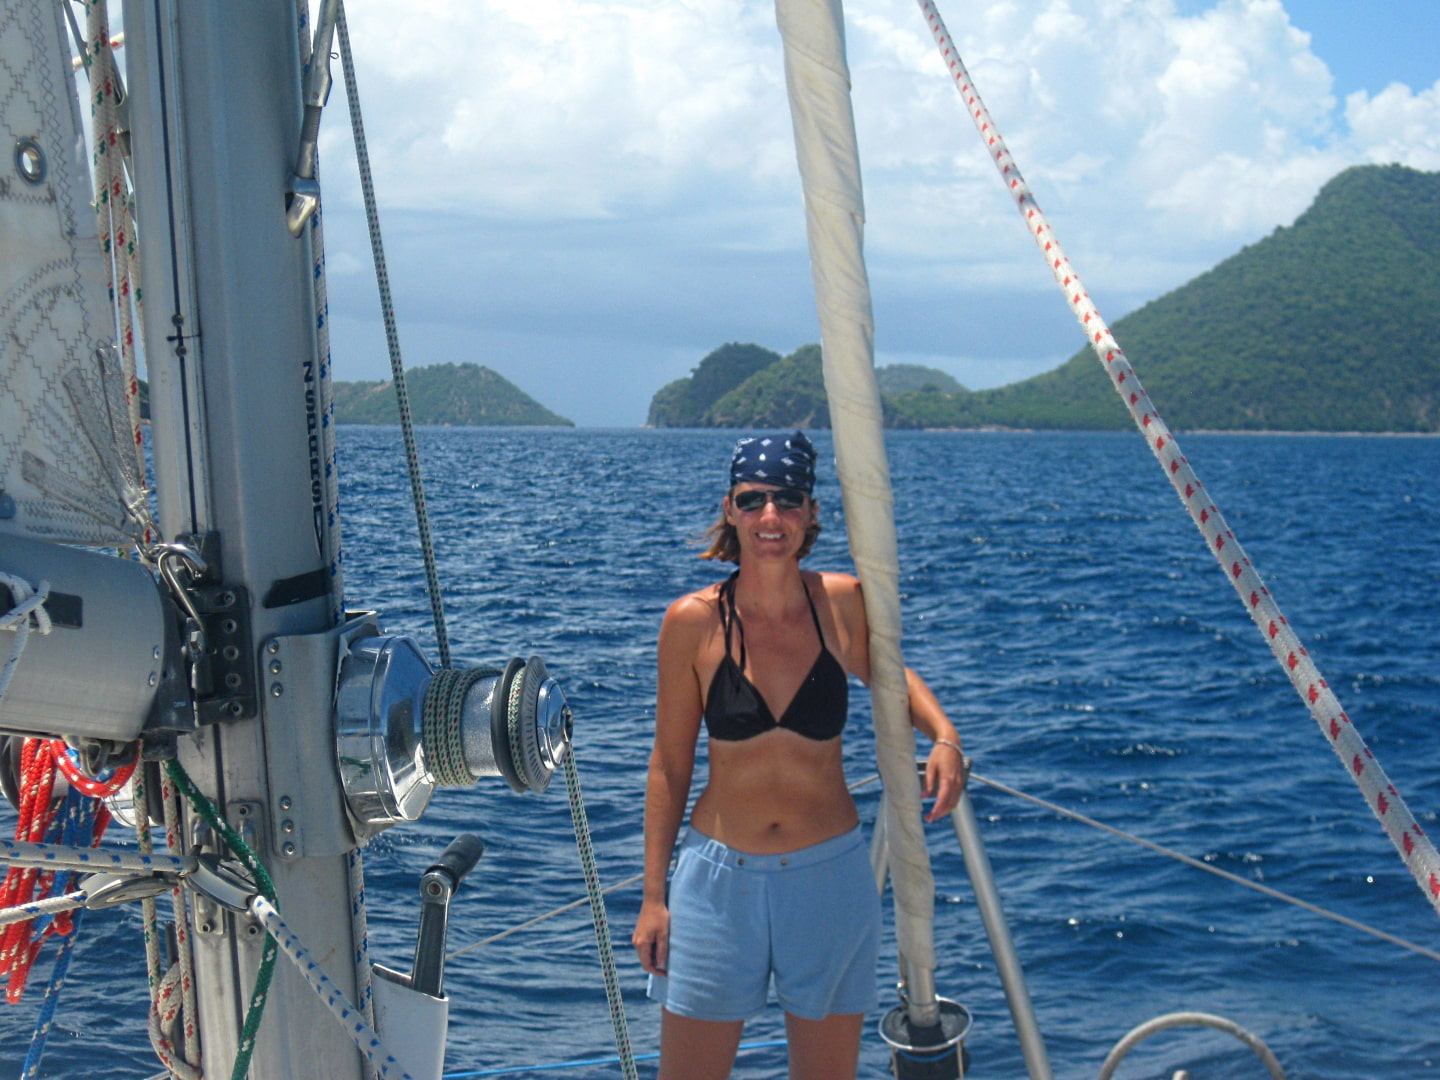 Sailing on Irie in the Caribbean